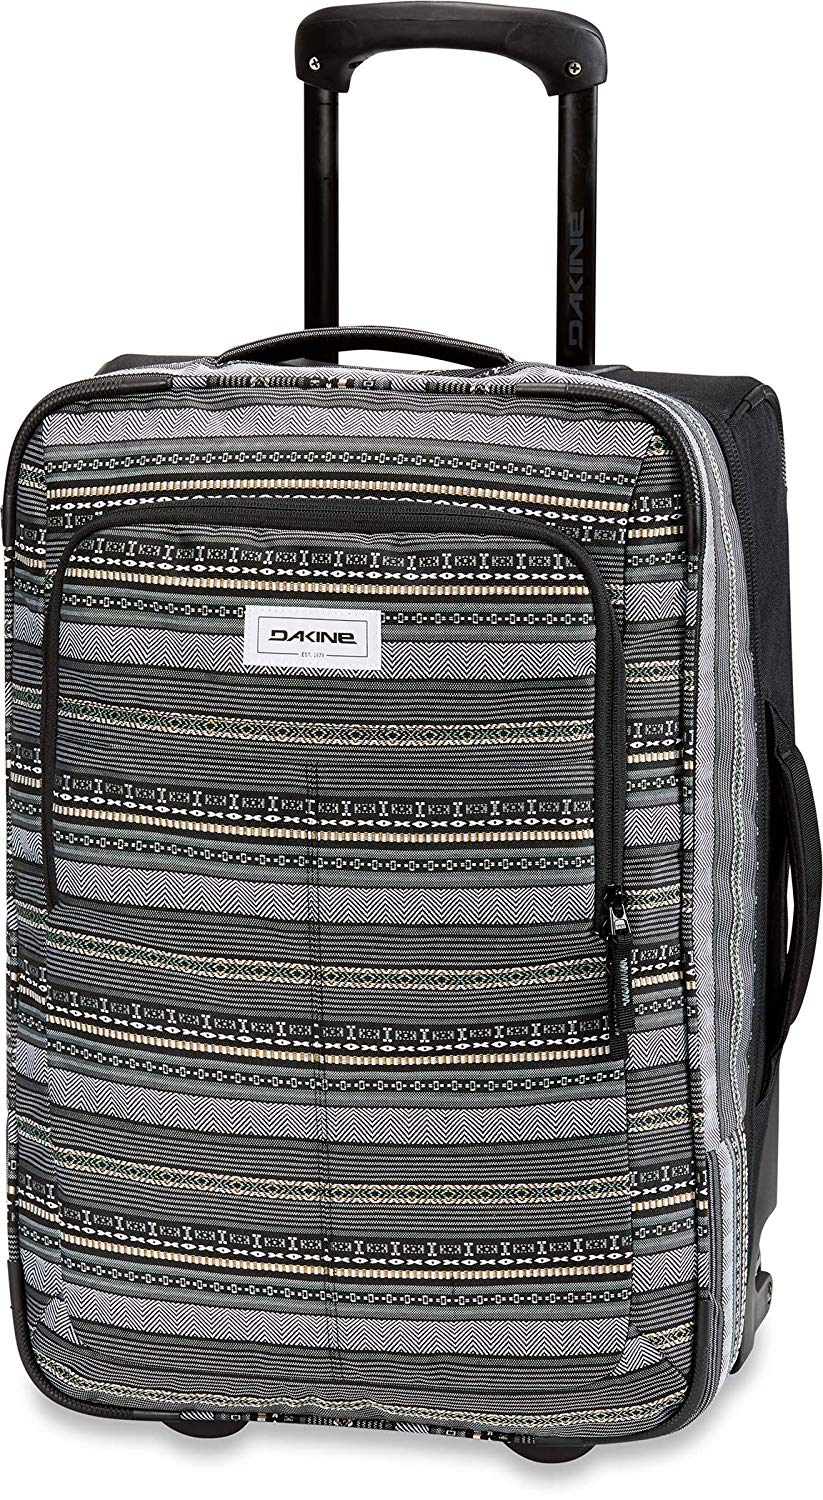 Dakine Trolley amazon